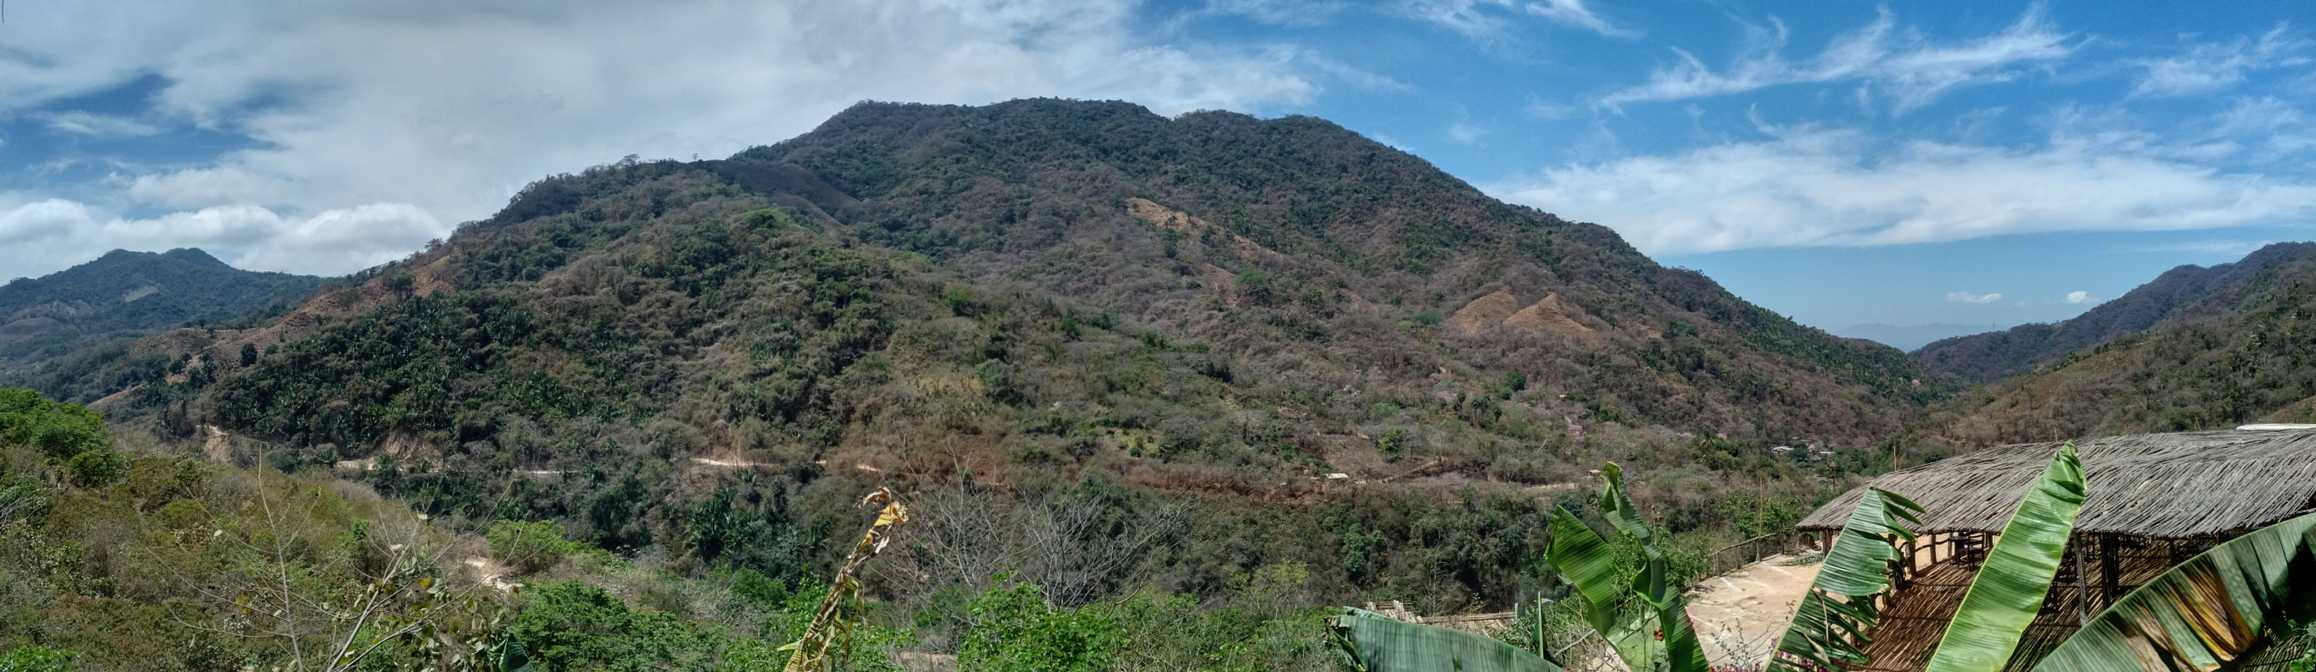 Sierra Madre mountains panorama